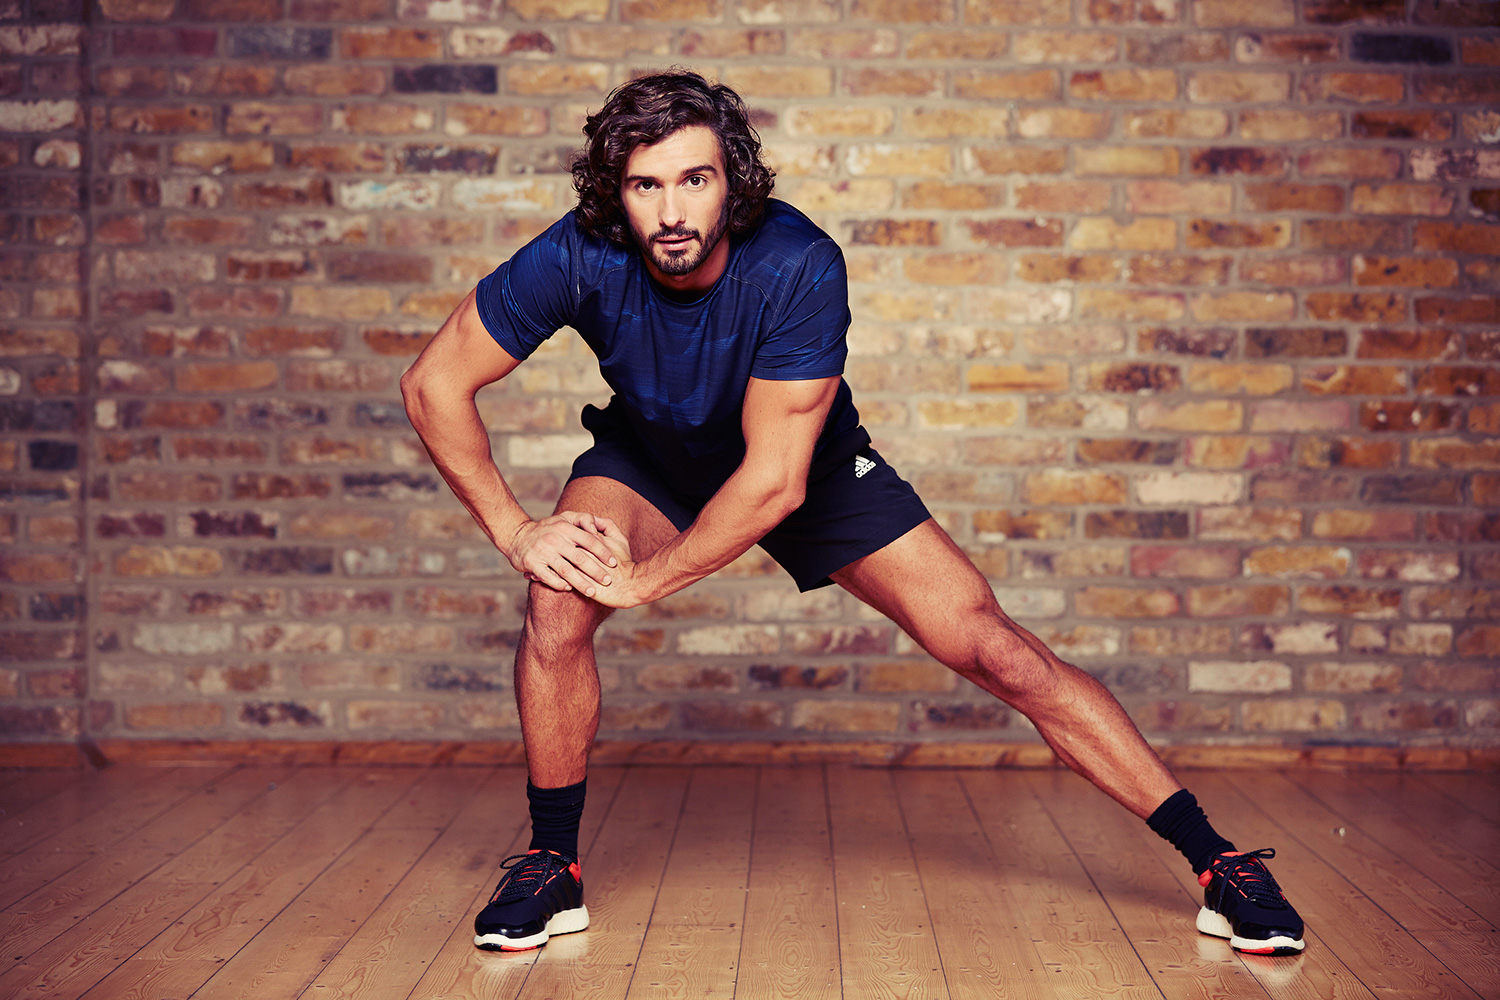 Cake Tv Show Reviews : Tv Show Review   Joe Wicks: The Body Coach Ch4   The Cake ...